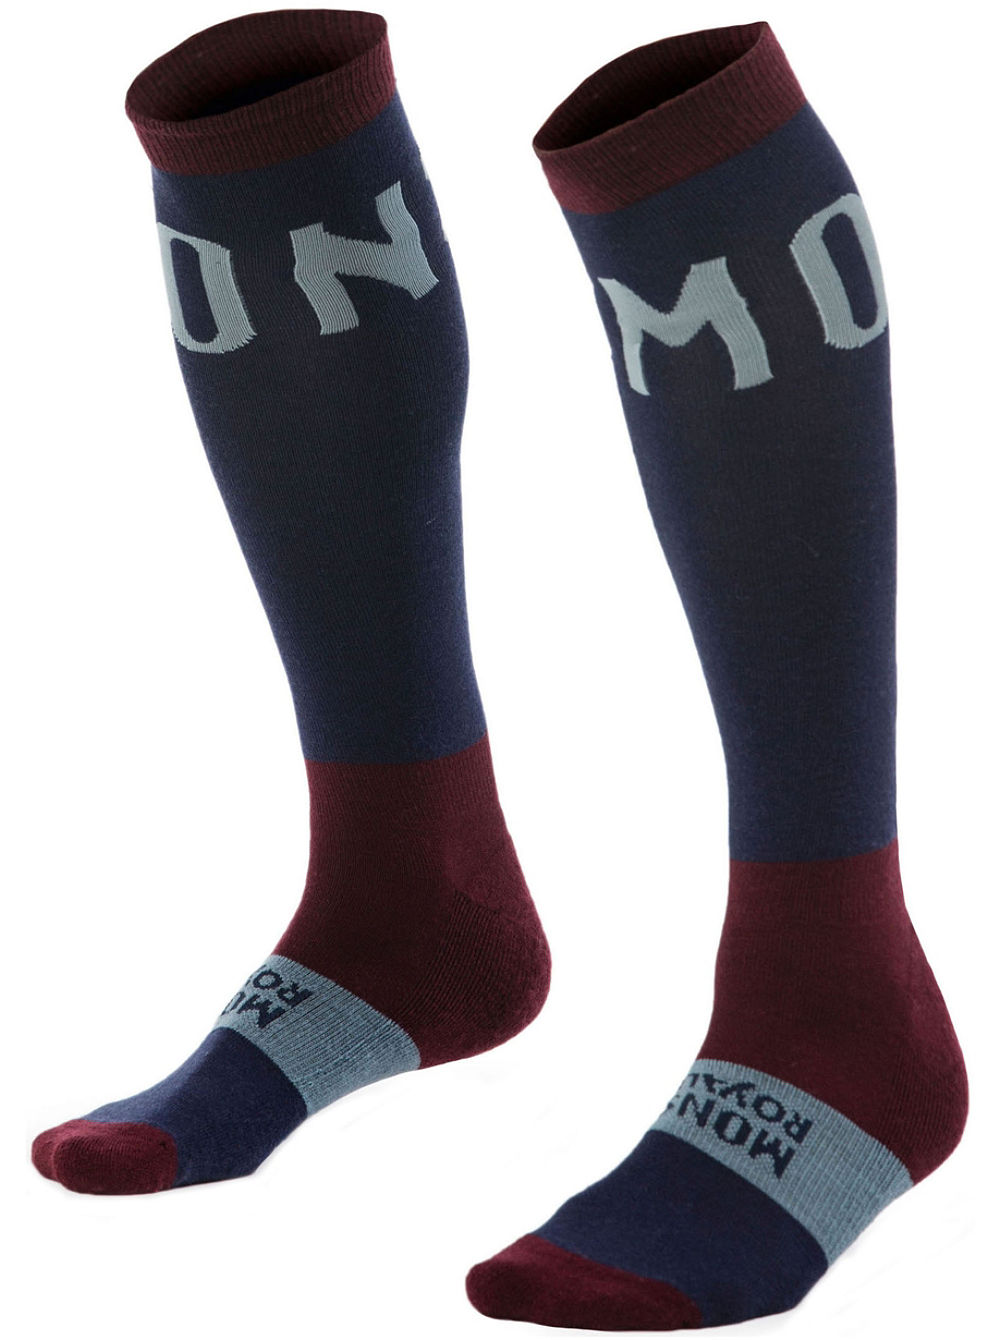 Merino Lift Access Plain Tech Socks